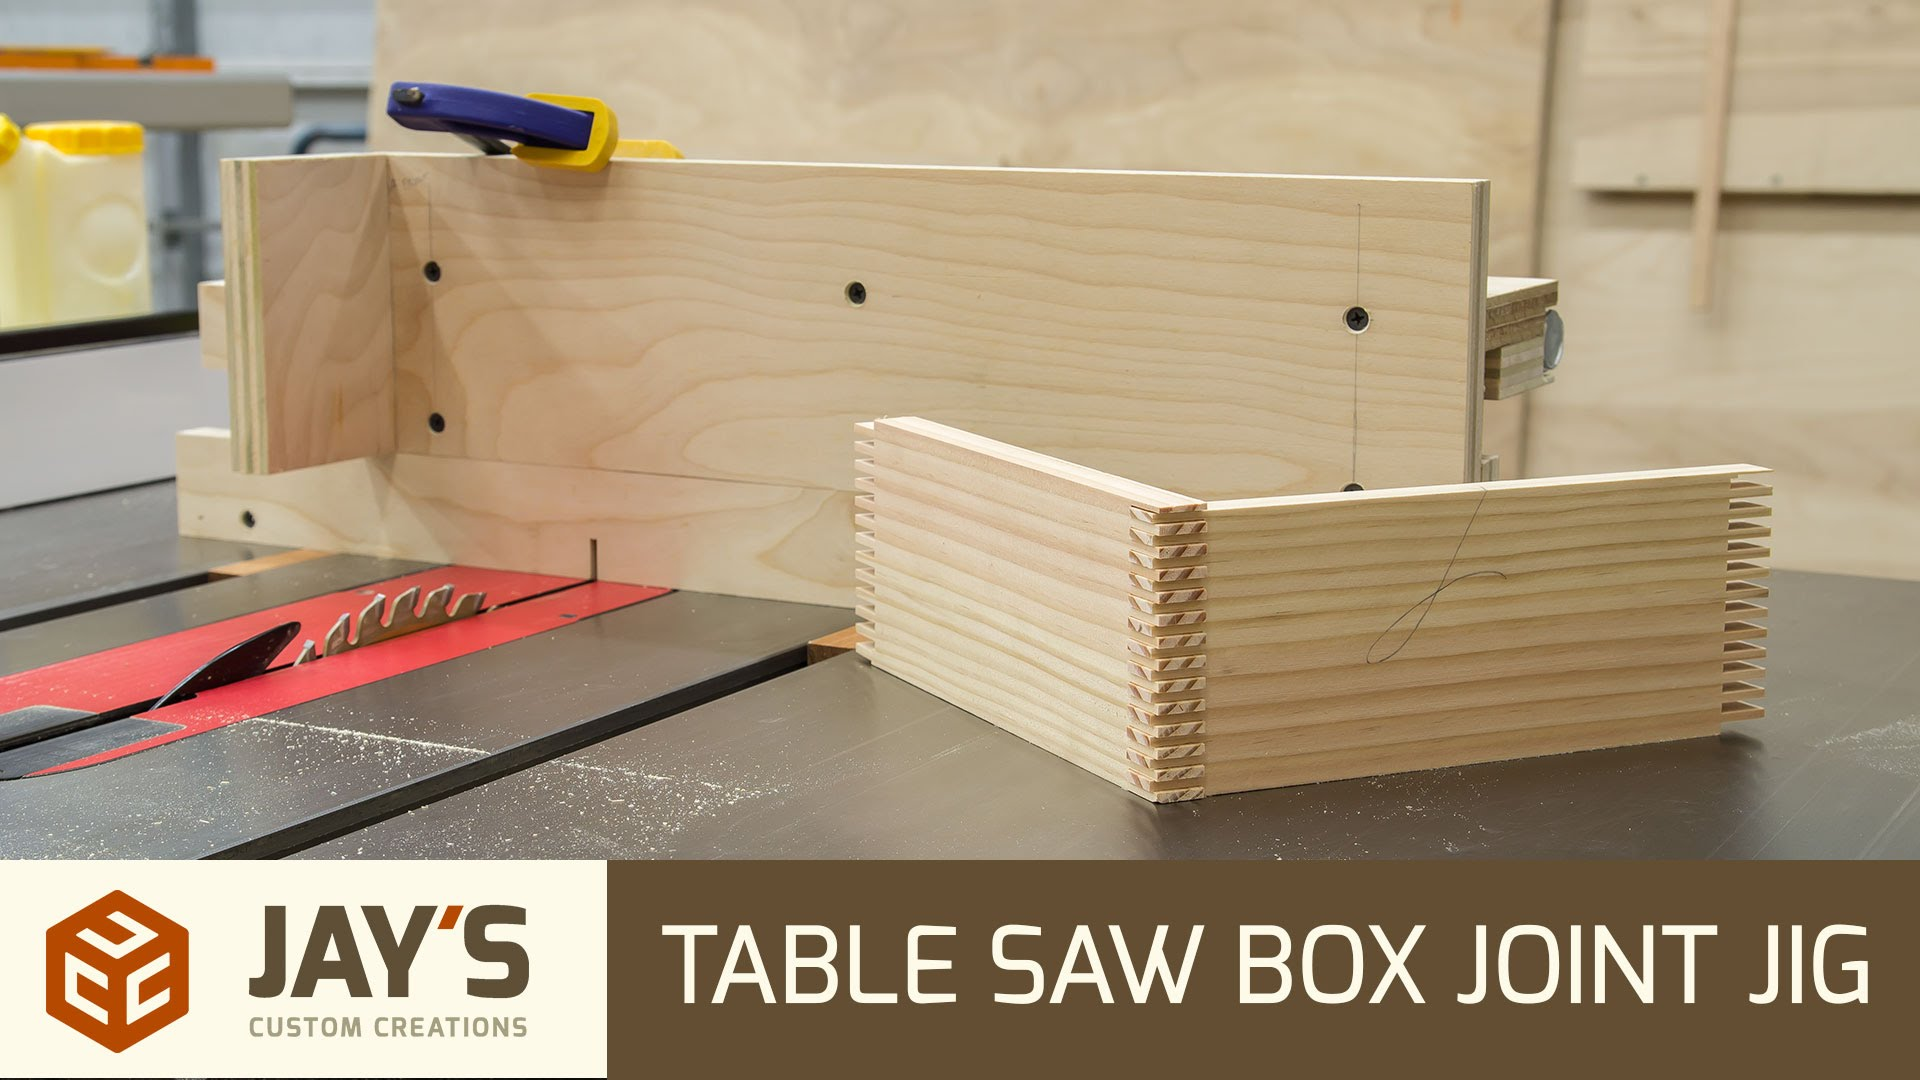 Table Saw Box Joint Jig Jays Custom Creations